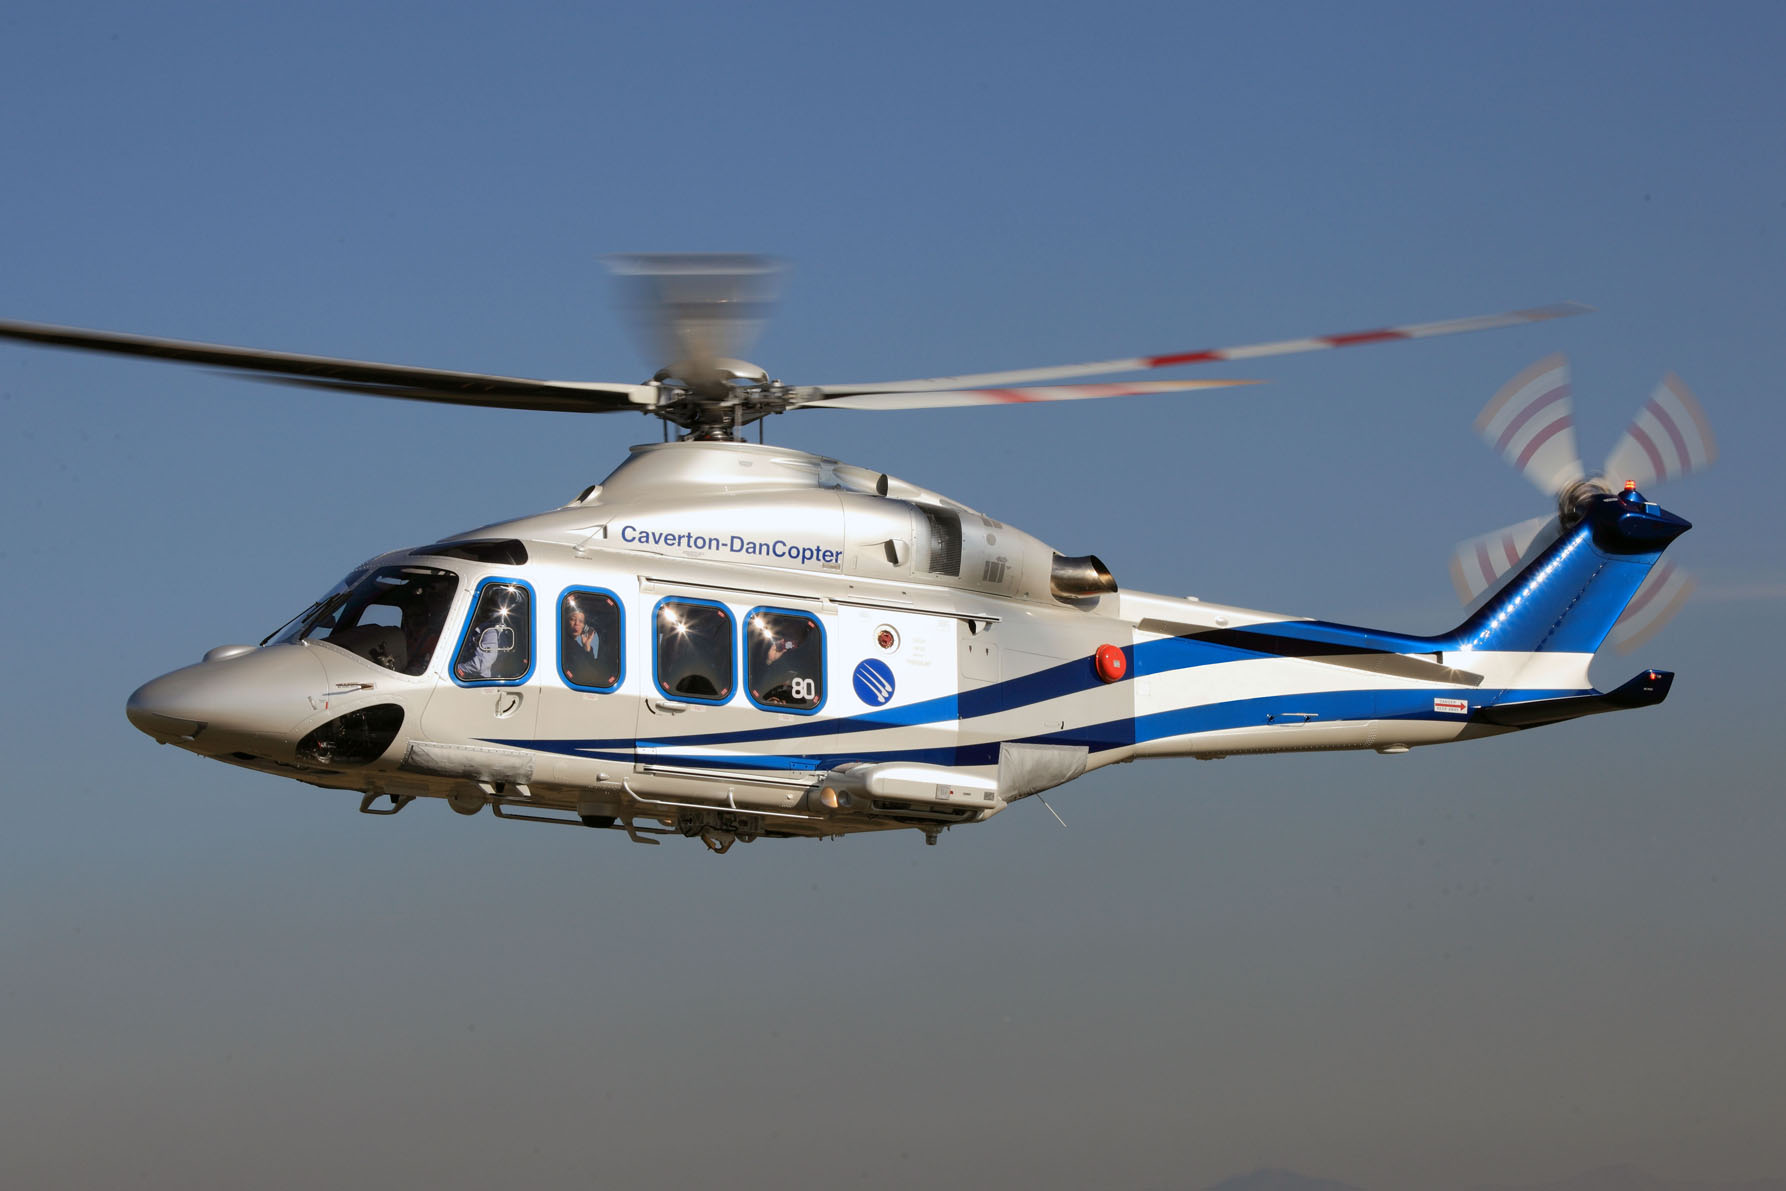 AW139 helicopter delivered to DanCopter